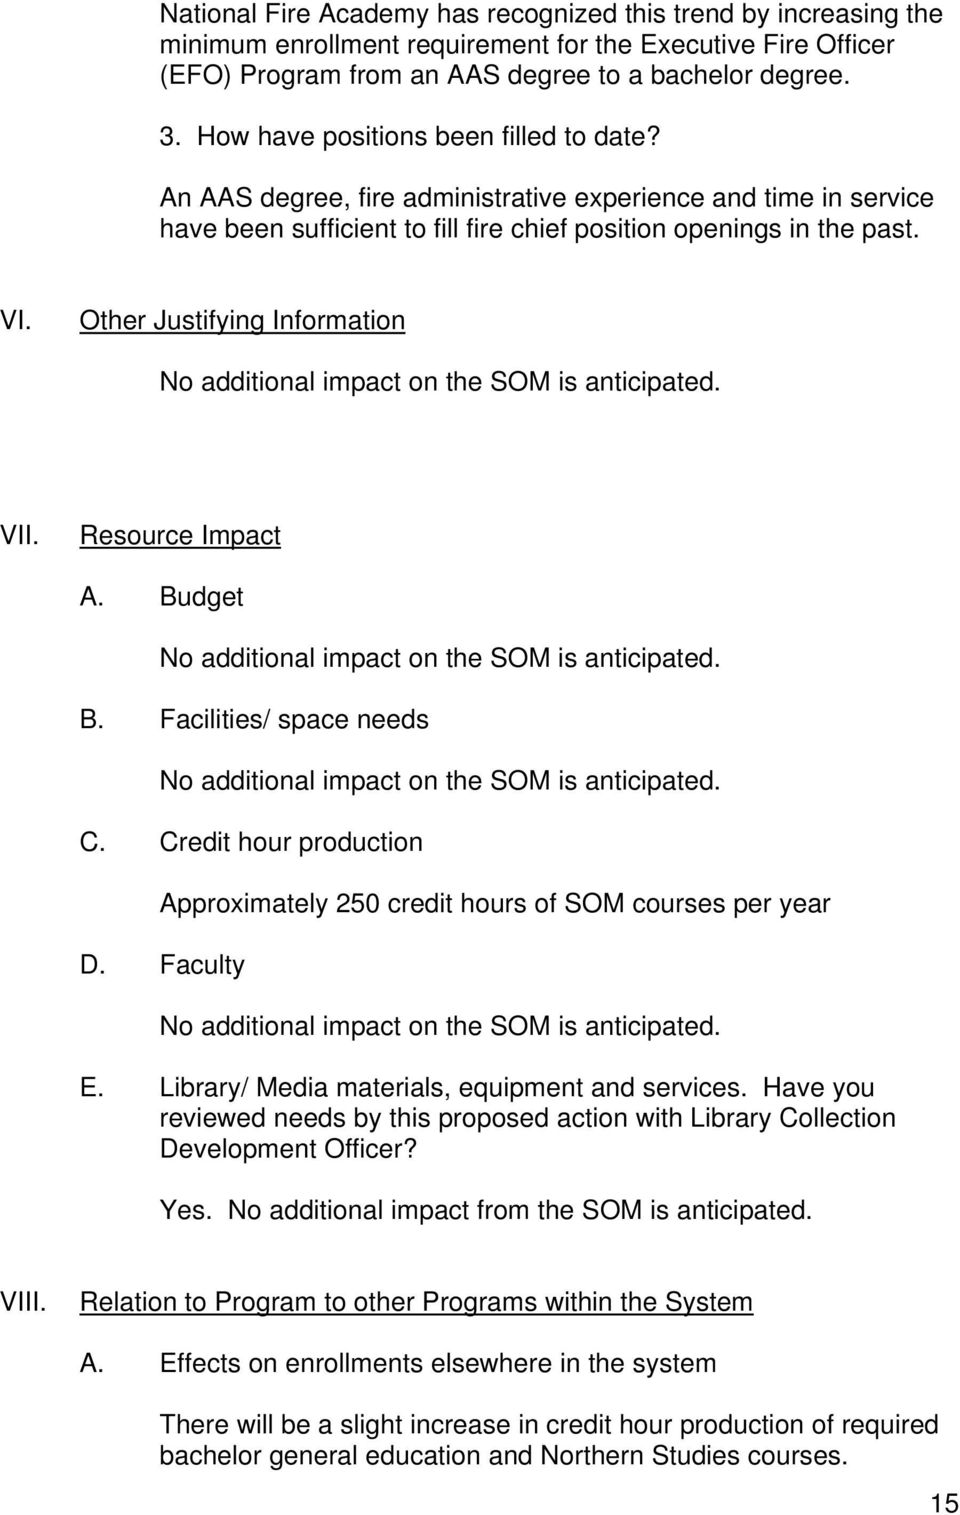 Other Justifying Information No additional impact on the SOM is anticipated. VII. Resource Impact A. Budget No additional impact on the SOM is anticipated. B. Facilities/ space needs No additional impact on the SOM is anticipated.